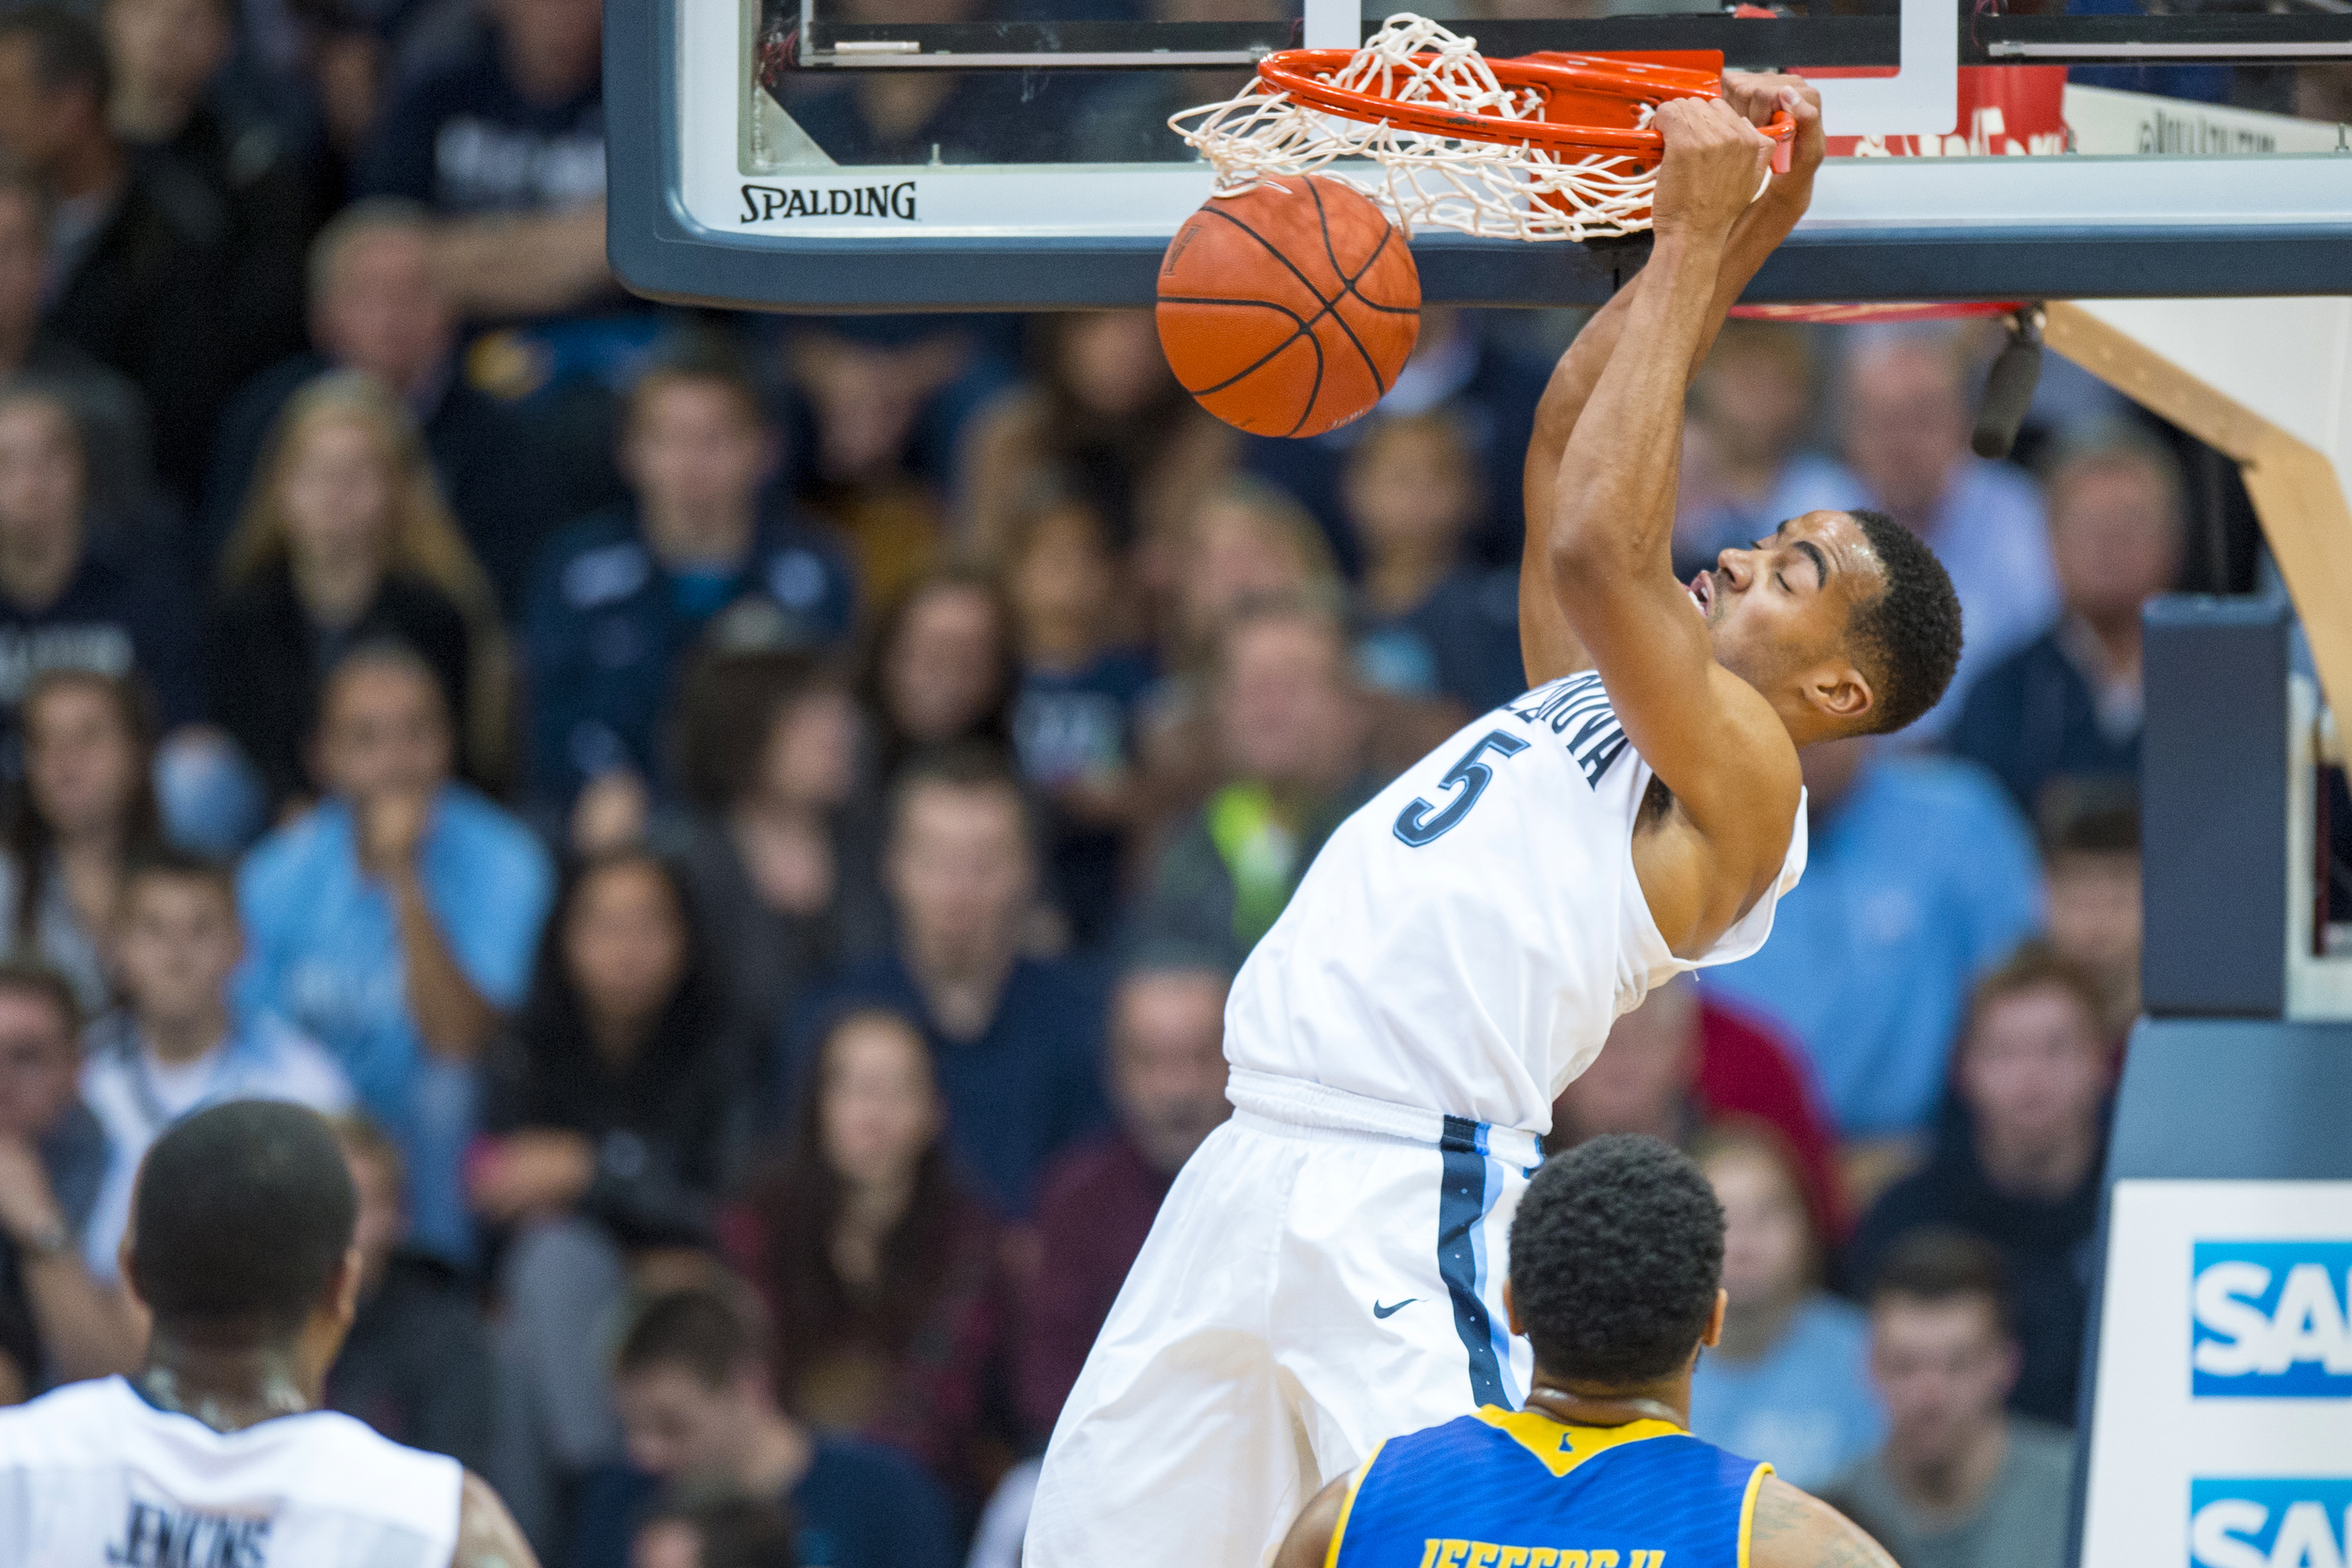 22 December 2015: Villanova Wildcats guard Phil Booth (5) hangs on the rim after his dunk during the NCAA basketball game between the Delaware Blue Hens and the Villanova Wildcats played at the Pavillion in Villanova, PA. (Photo by Gavin Baker/Icon Sportswire)